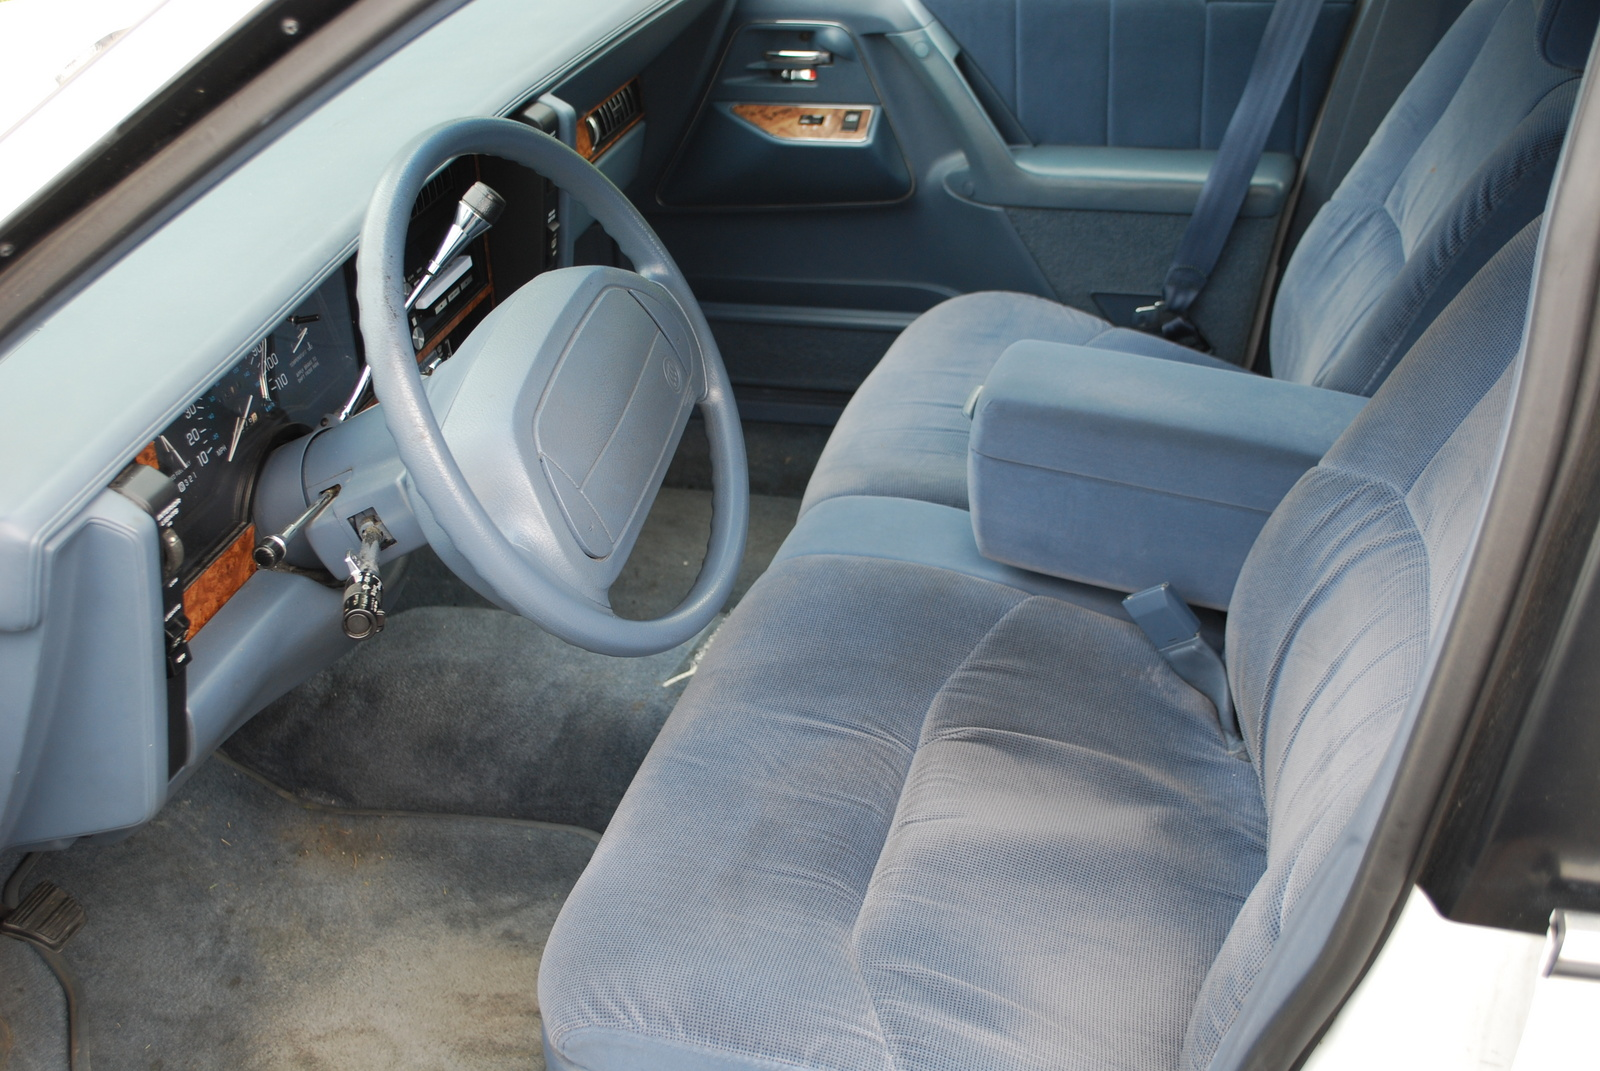 1996 Buick Century Interior Pictures To Pin On Pinterest Pinsdaddy